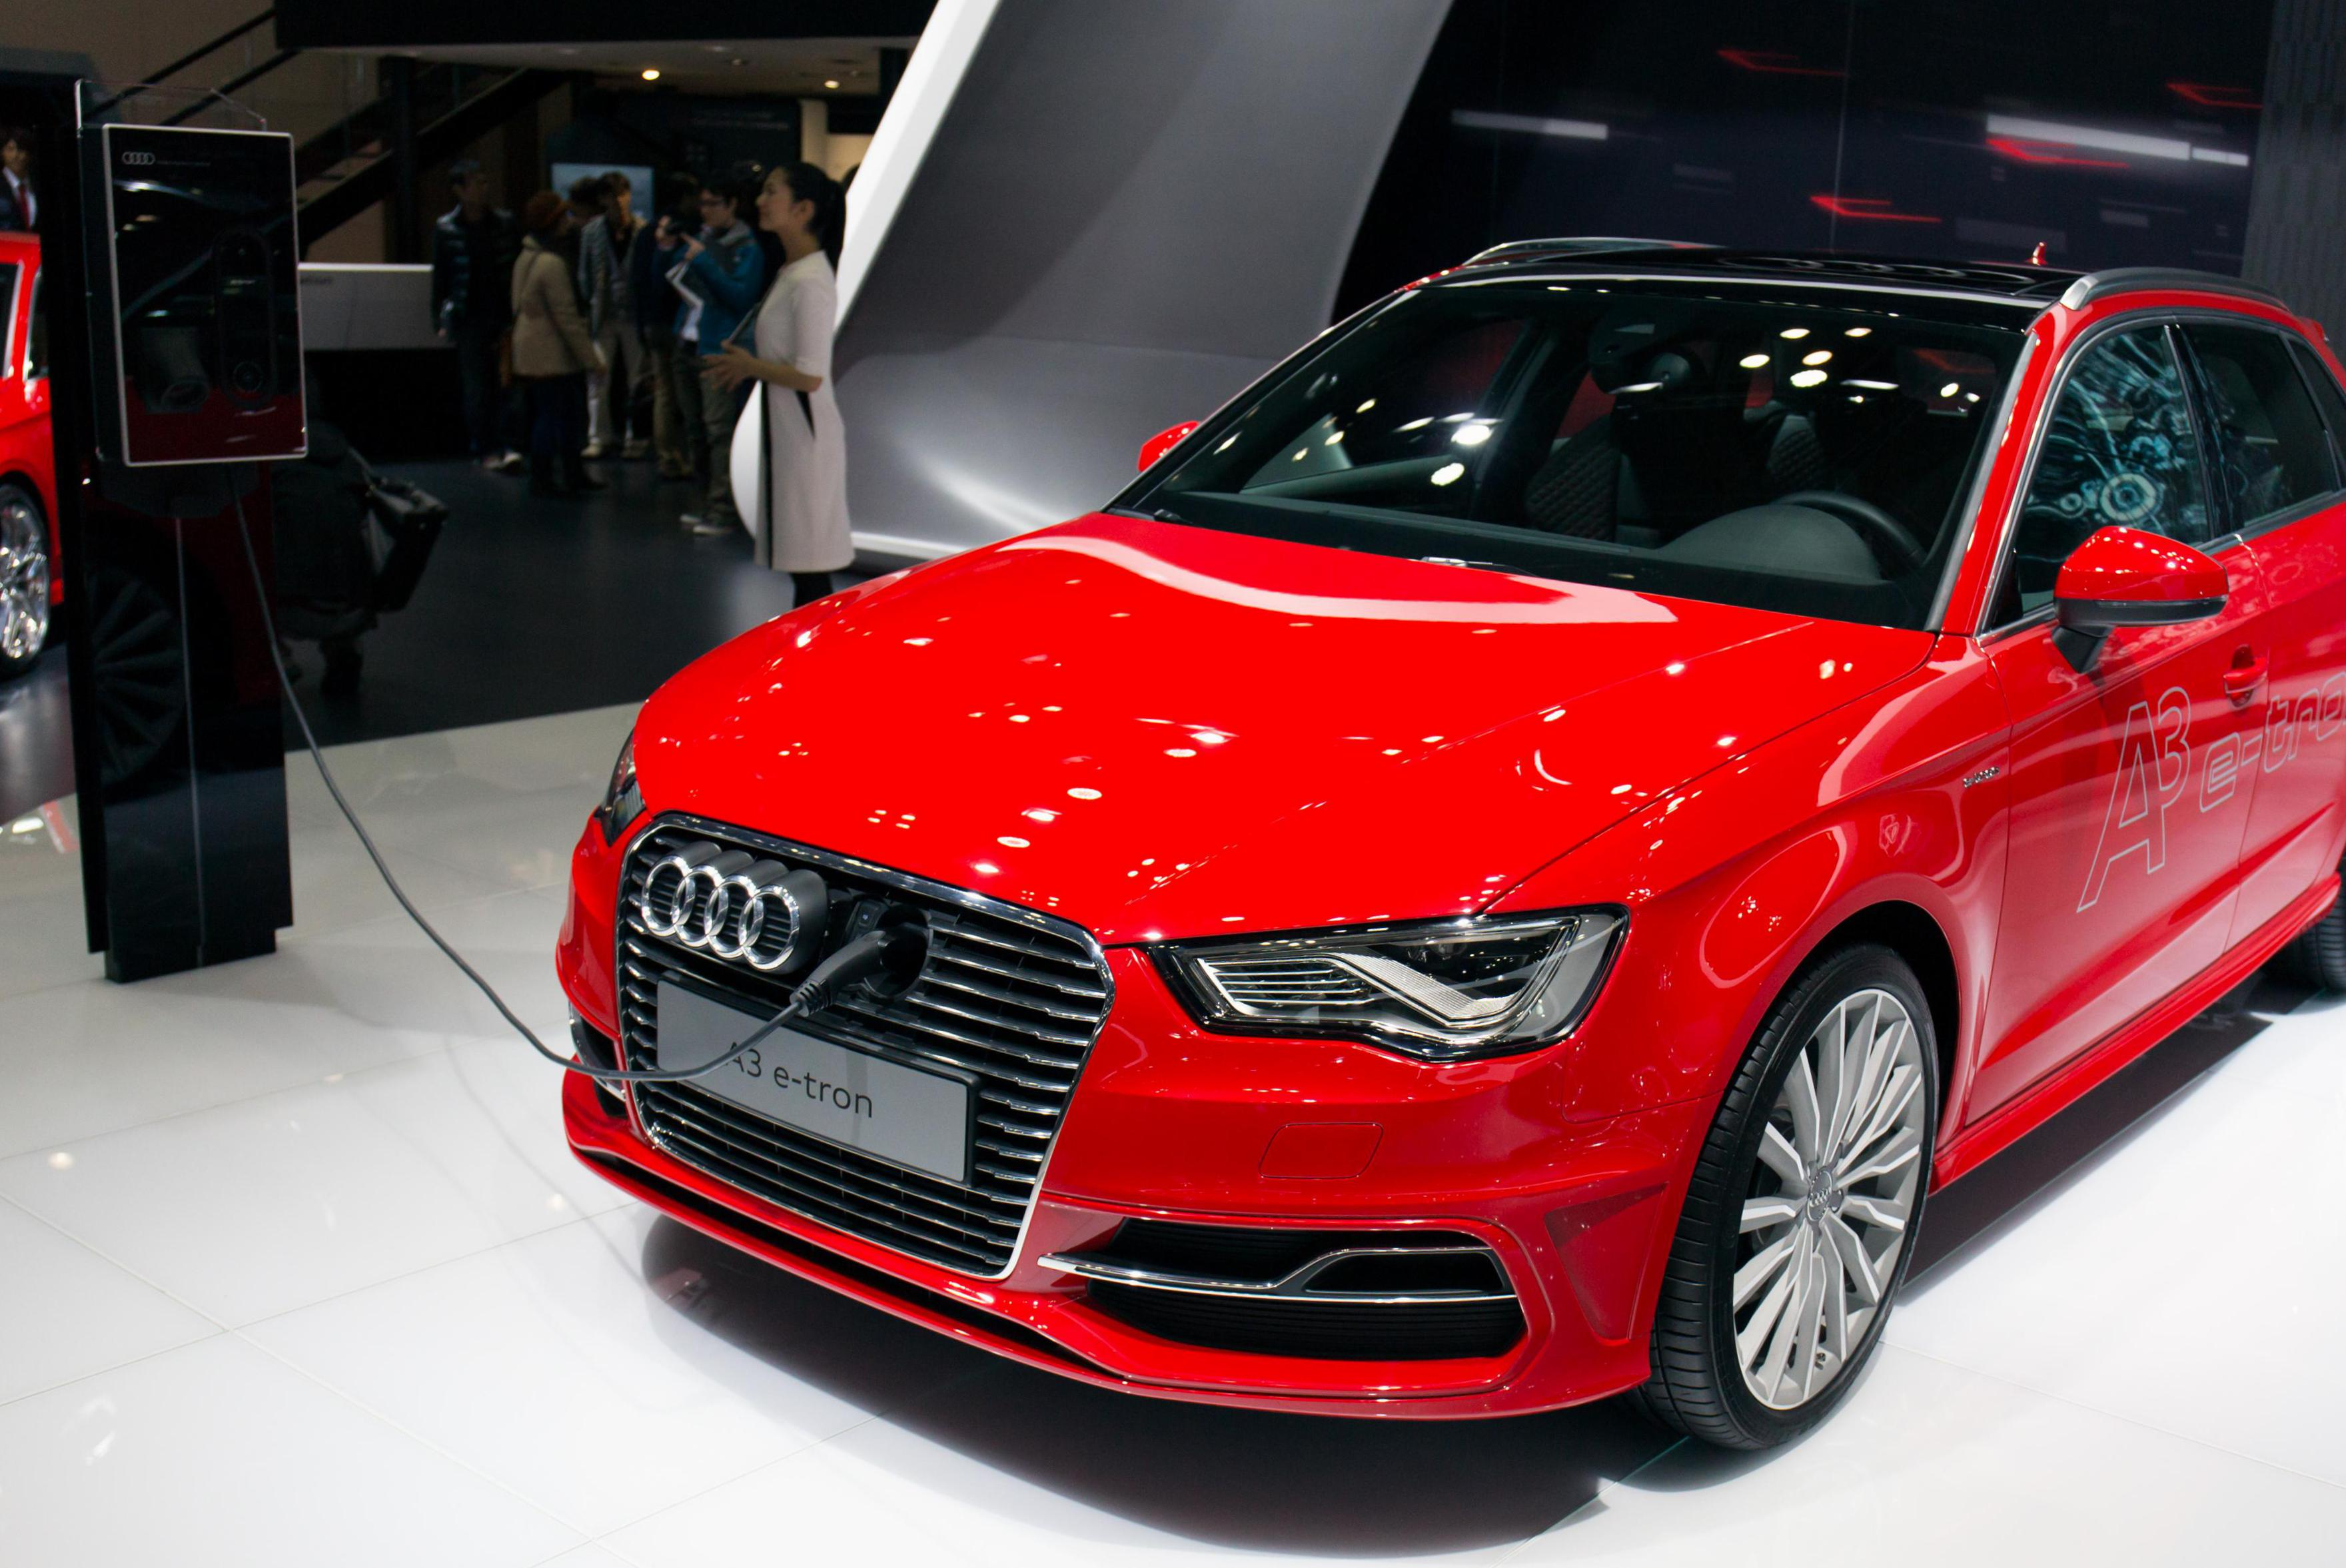 Audi A3 e-tron model hatchback